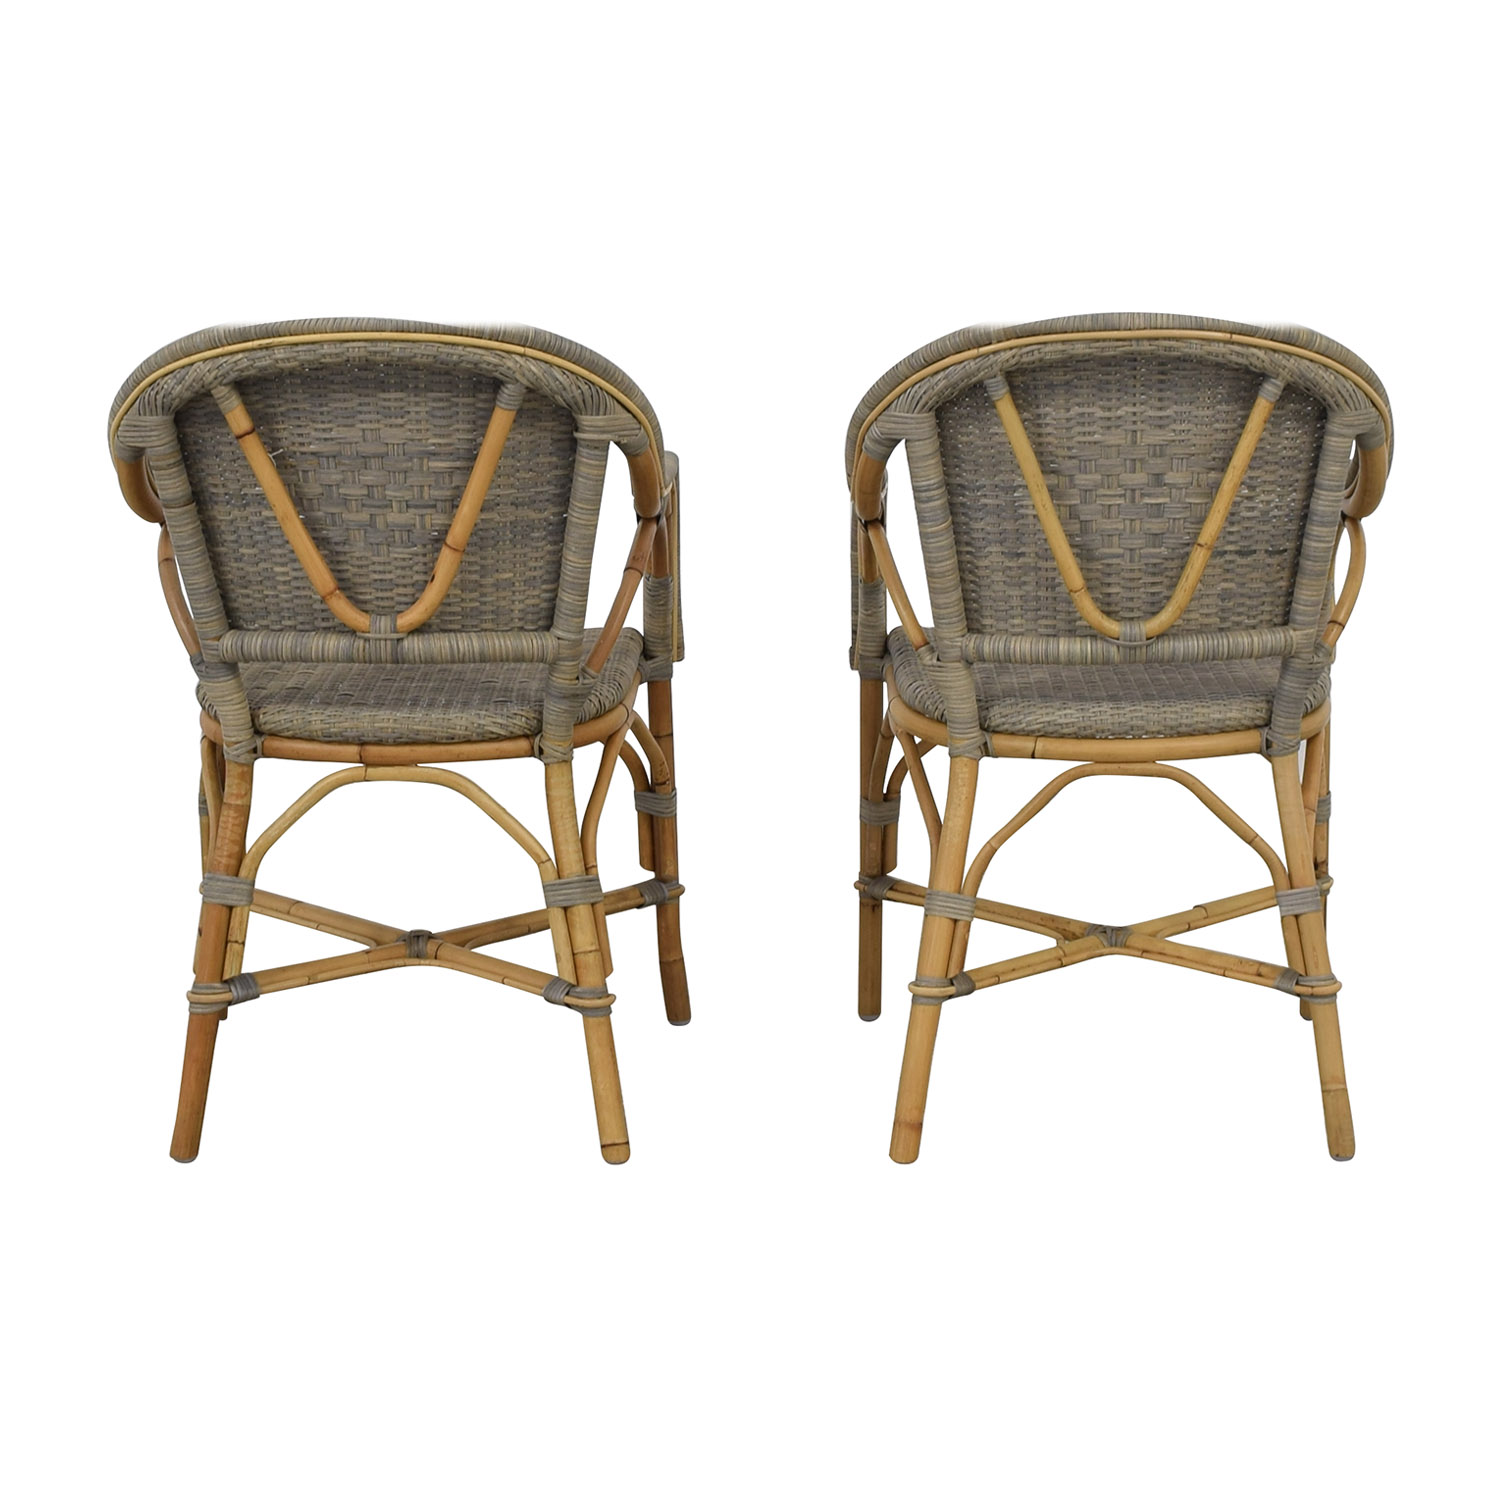 buy Serena & Lily Serena & Lily Sunwashed Riviera Armchairs online